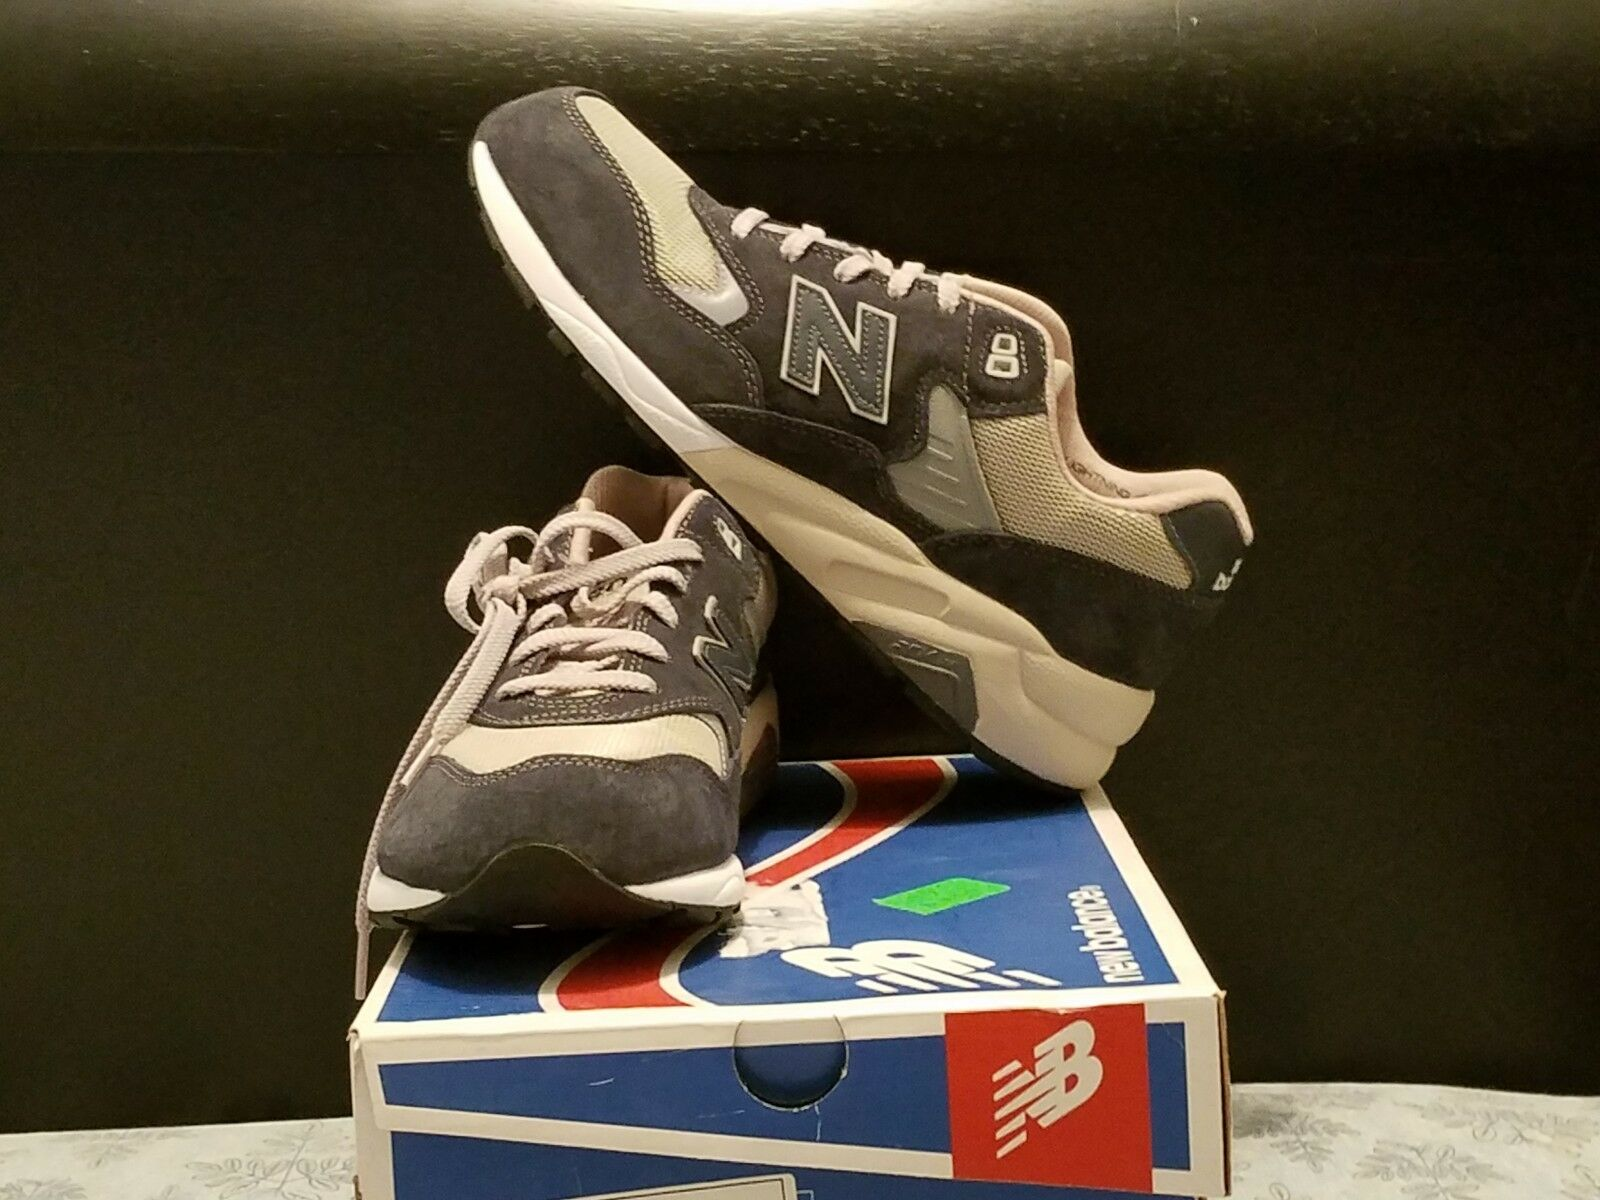 Mens new balance 580 shoes size 11 wide